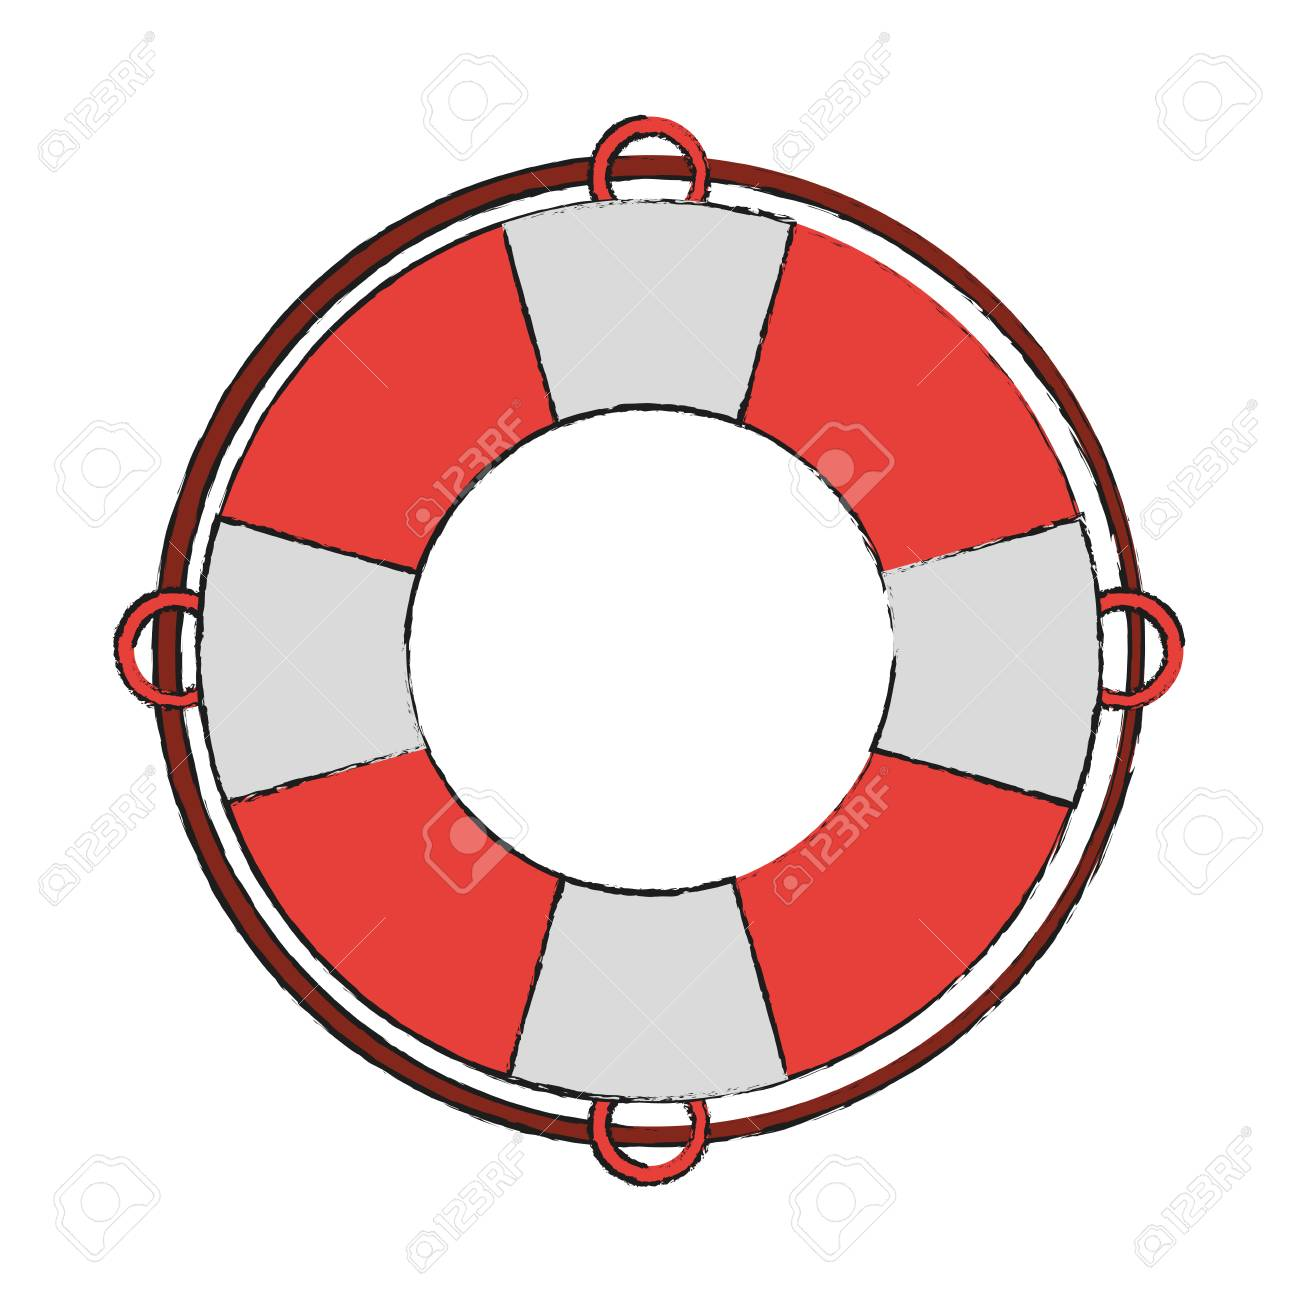 lifesaver boat symbol icon vector illustration graphic design